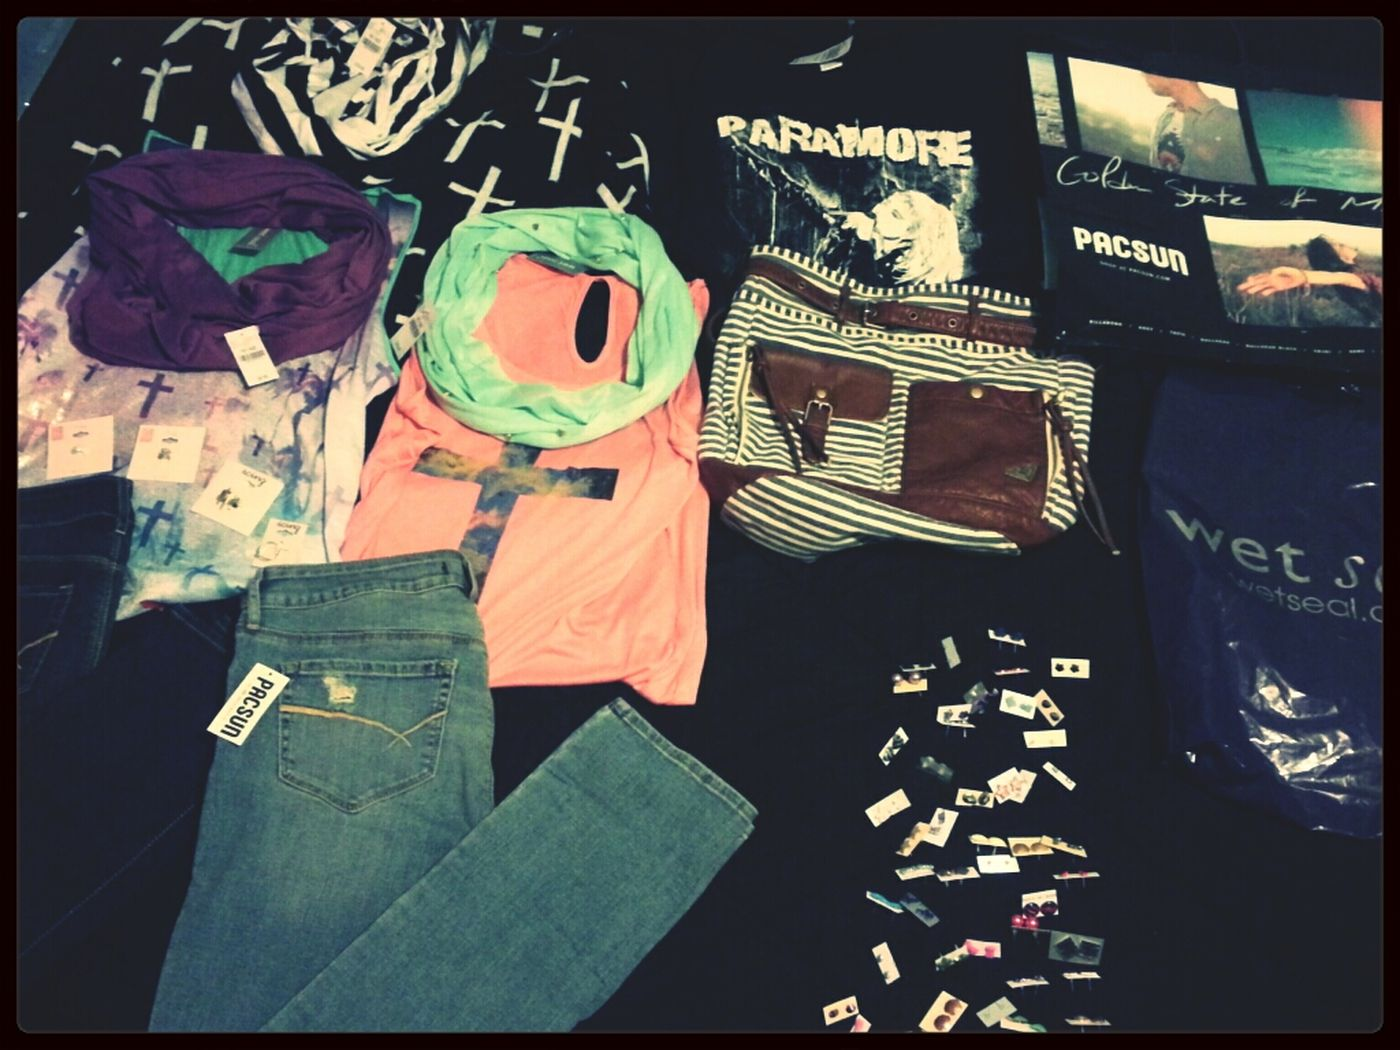 Splurged a tad bit at the mall today. Mall Pacsun Wet Seal